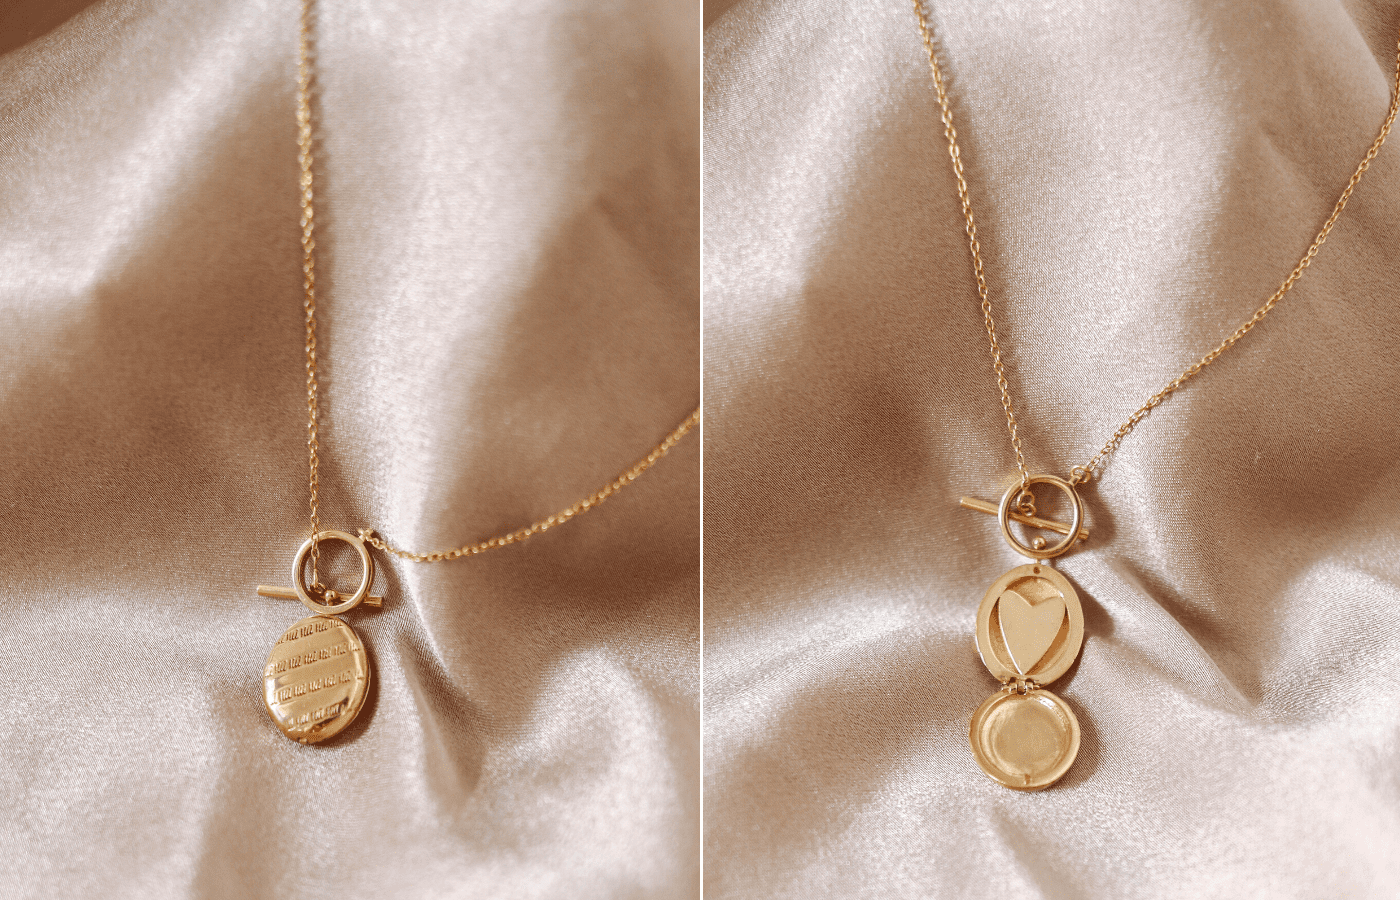 atelier agape necklace | Mothers day gift guide